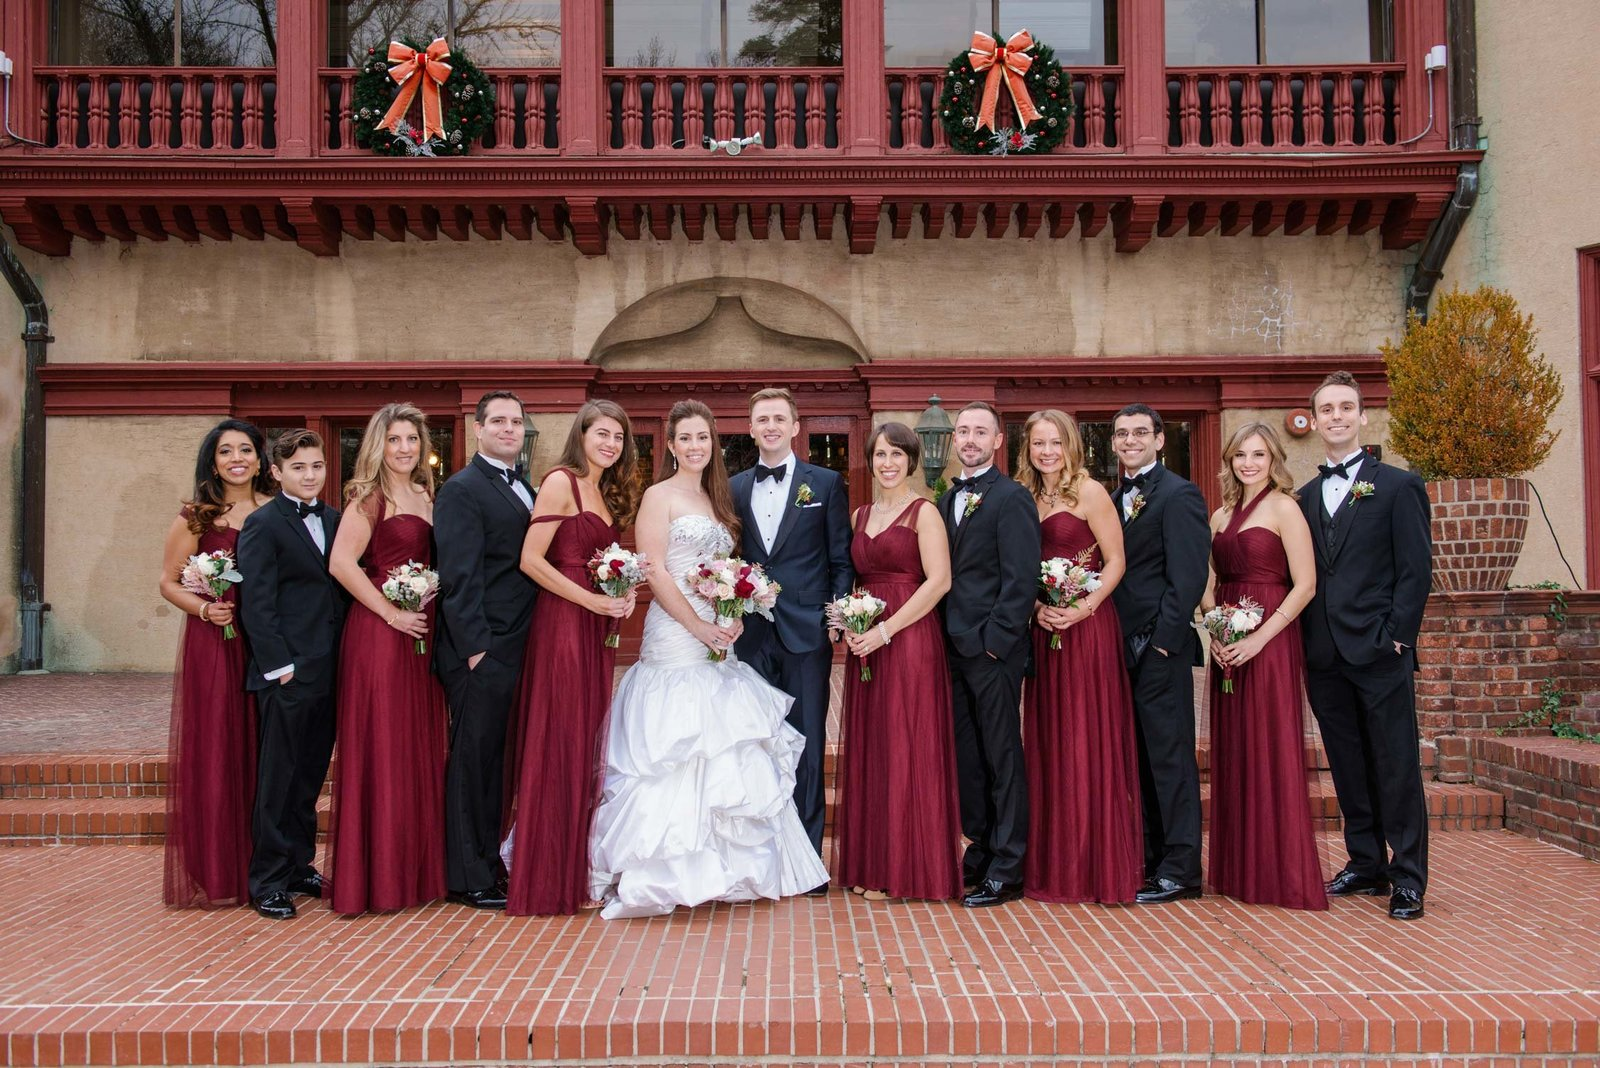 Coindre Hall bridal party photos